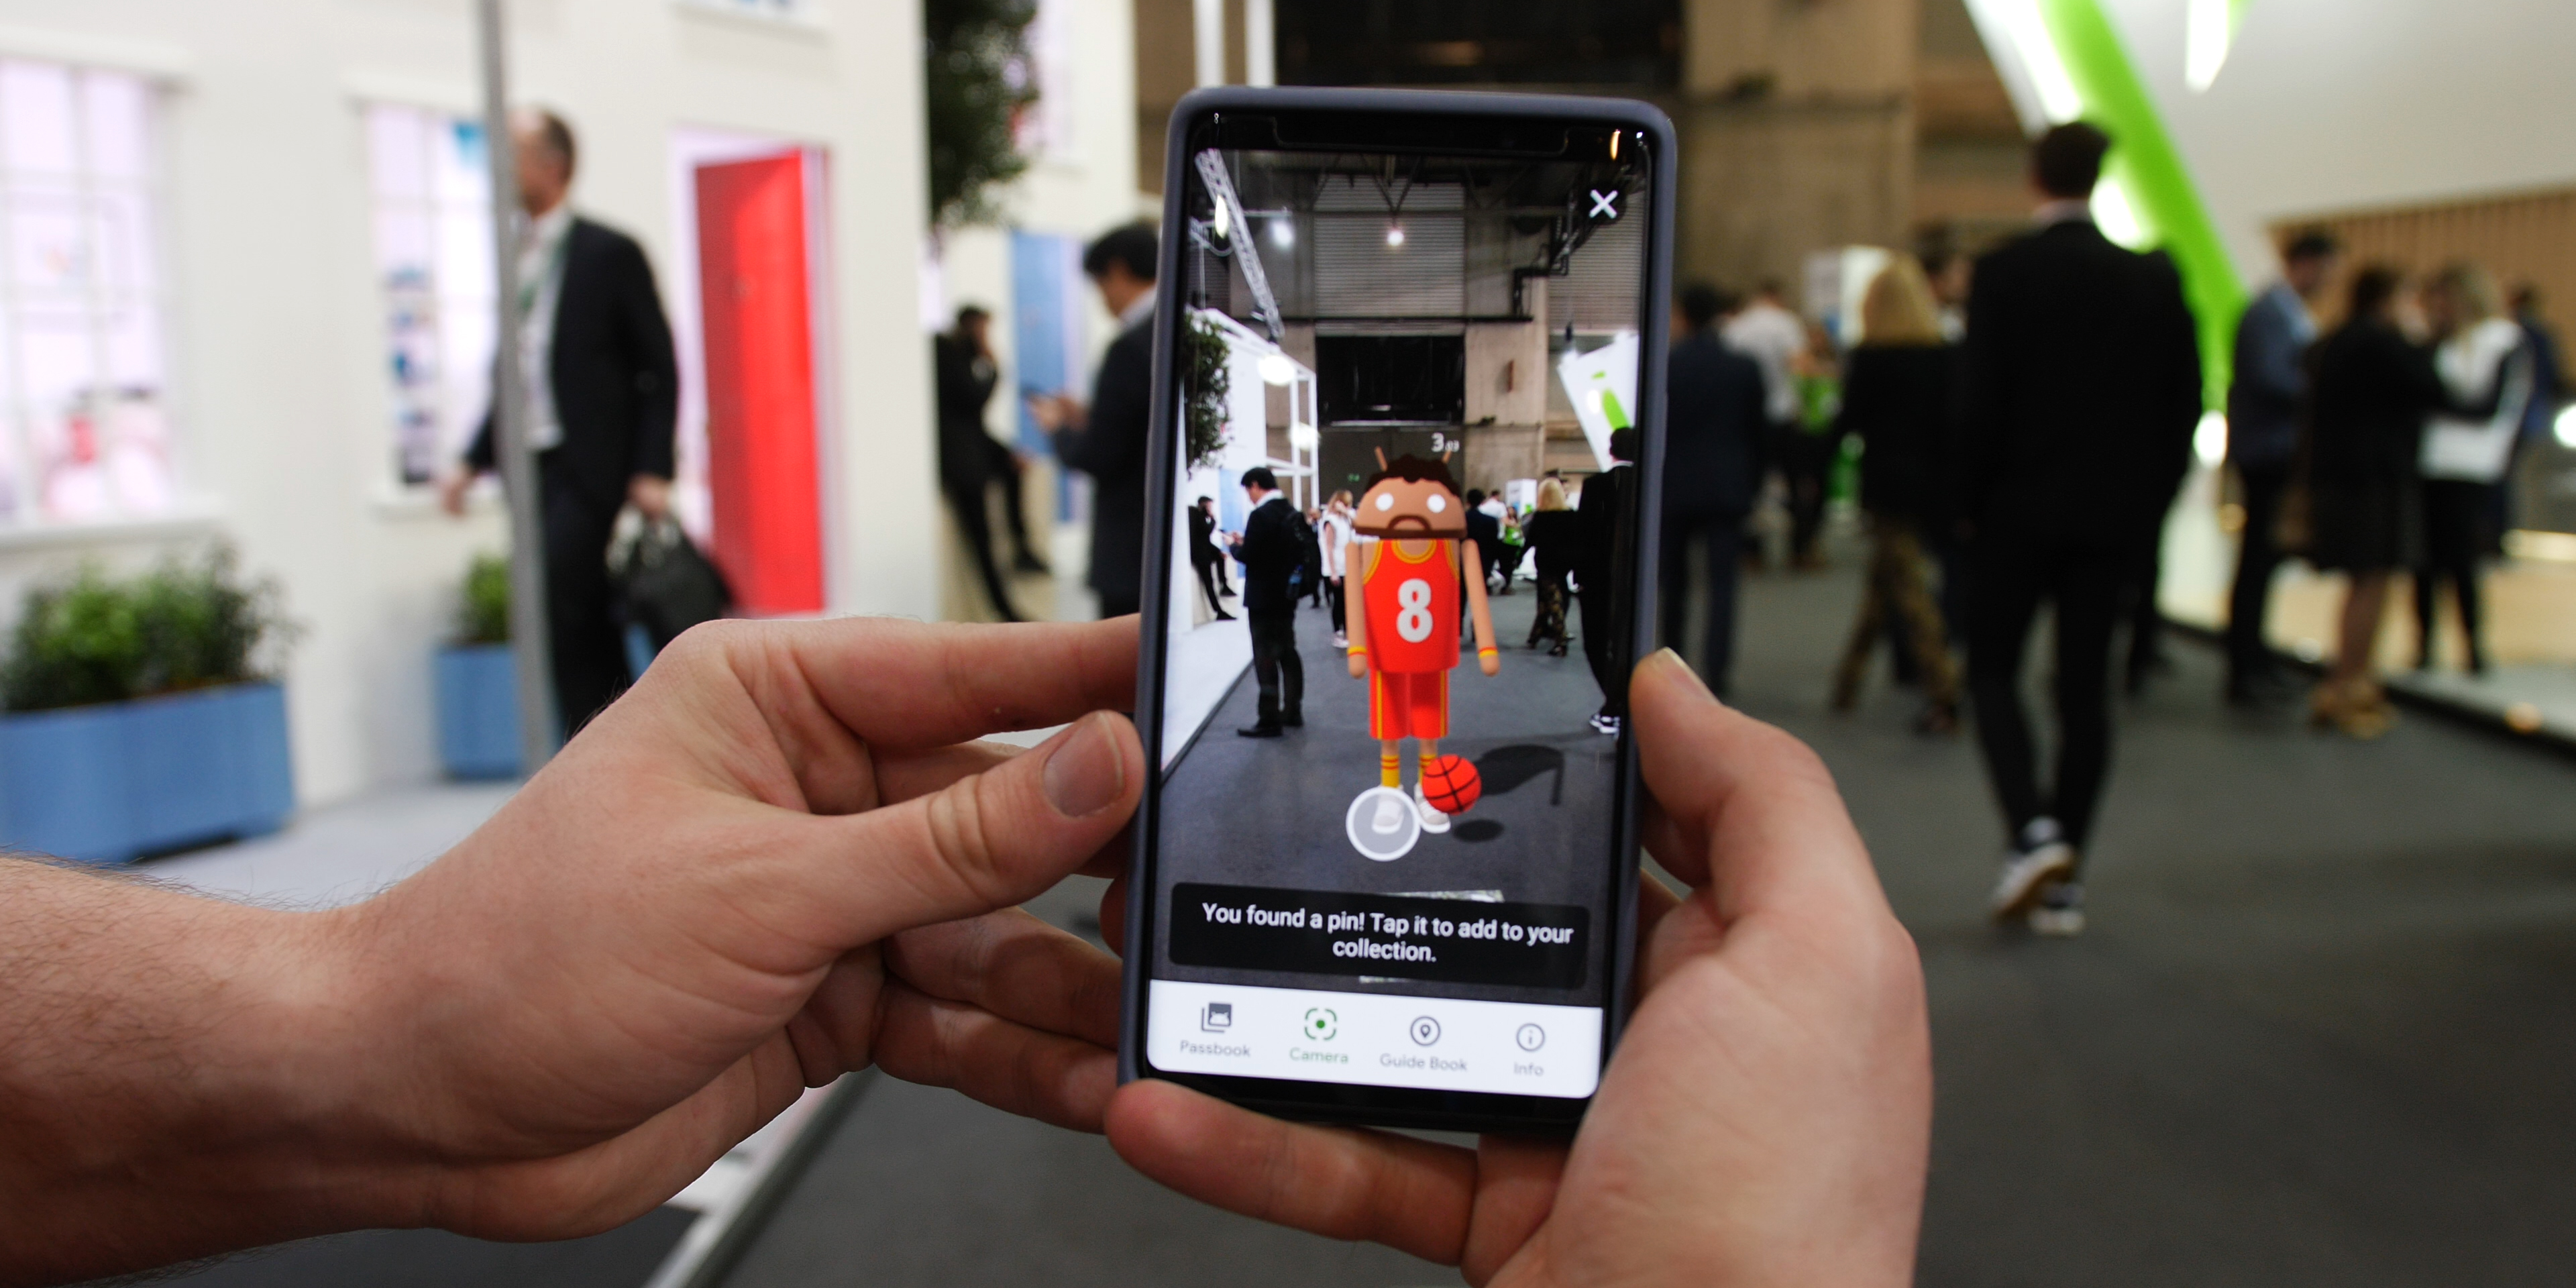 ARCore Android app now 'Google Play Services for AR' - 9to5Google